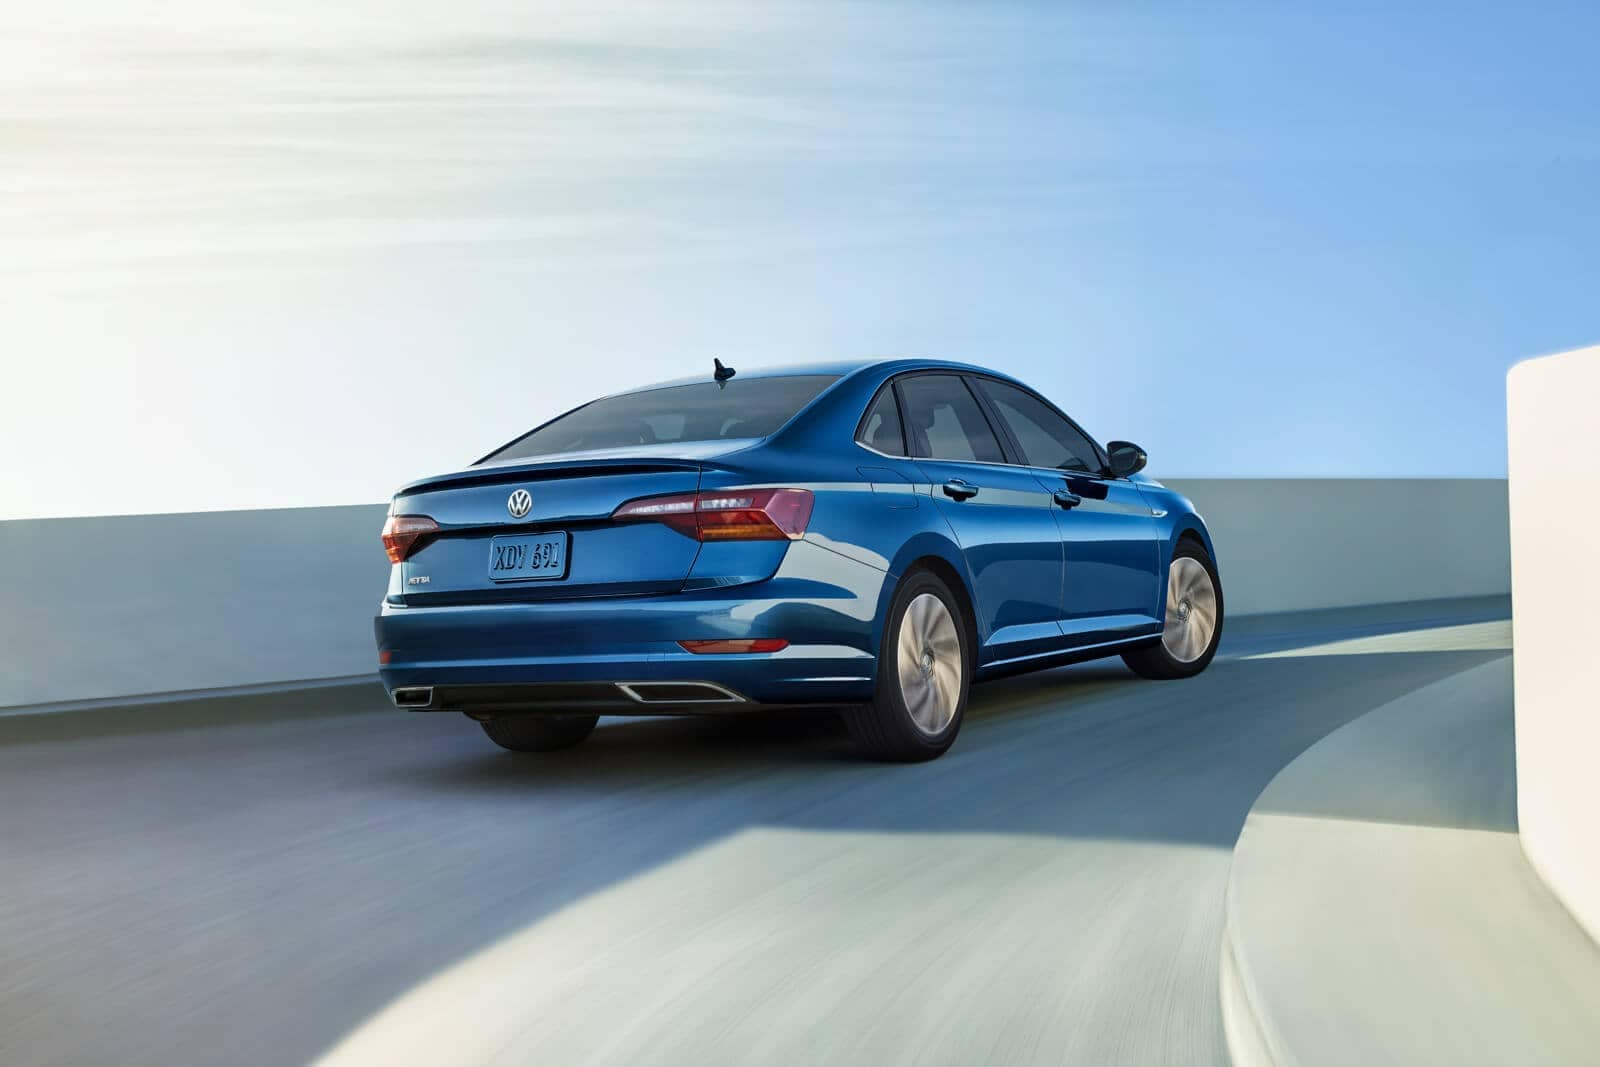 2019-Volkswagen-Jetta-SEL-Premium-in-silk-blue-metallic-back-view